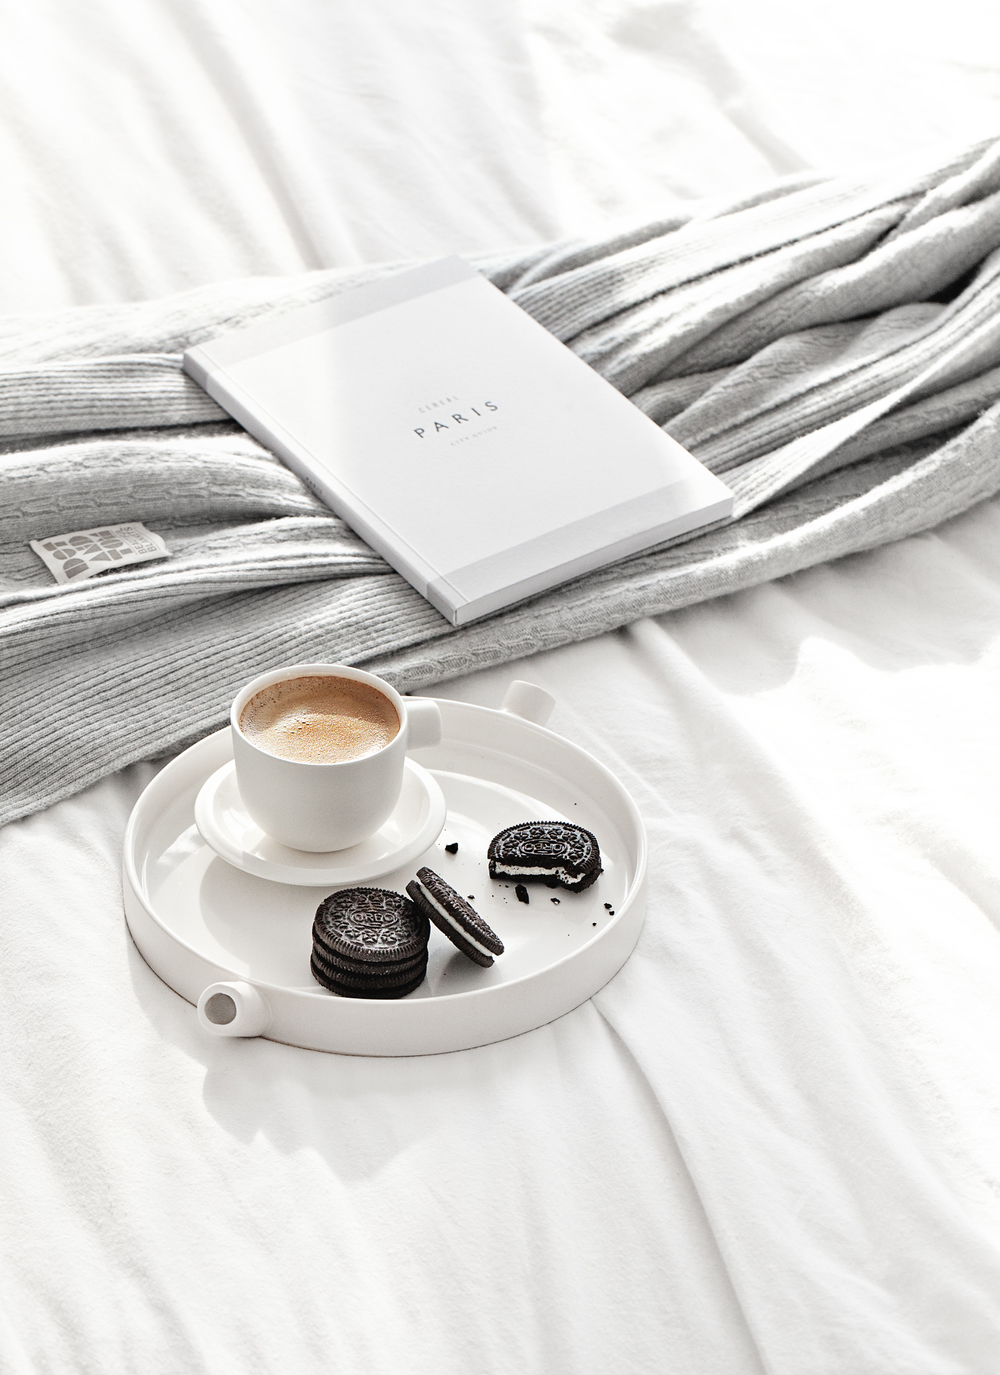 Gorgeous Cashmere & Merino Blanket from Dot and Tom | Ceramics Cup & Plate from Serax Belgium